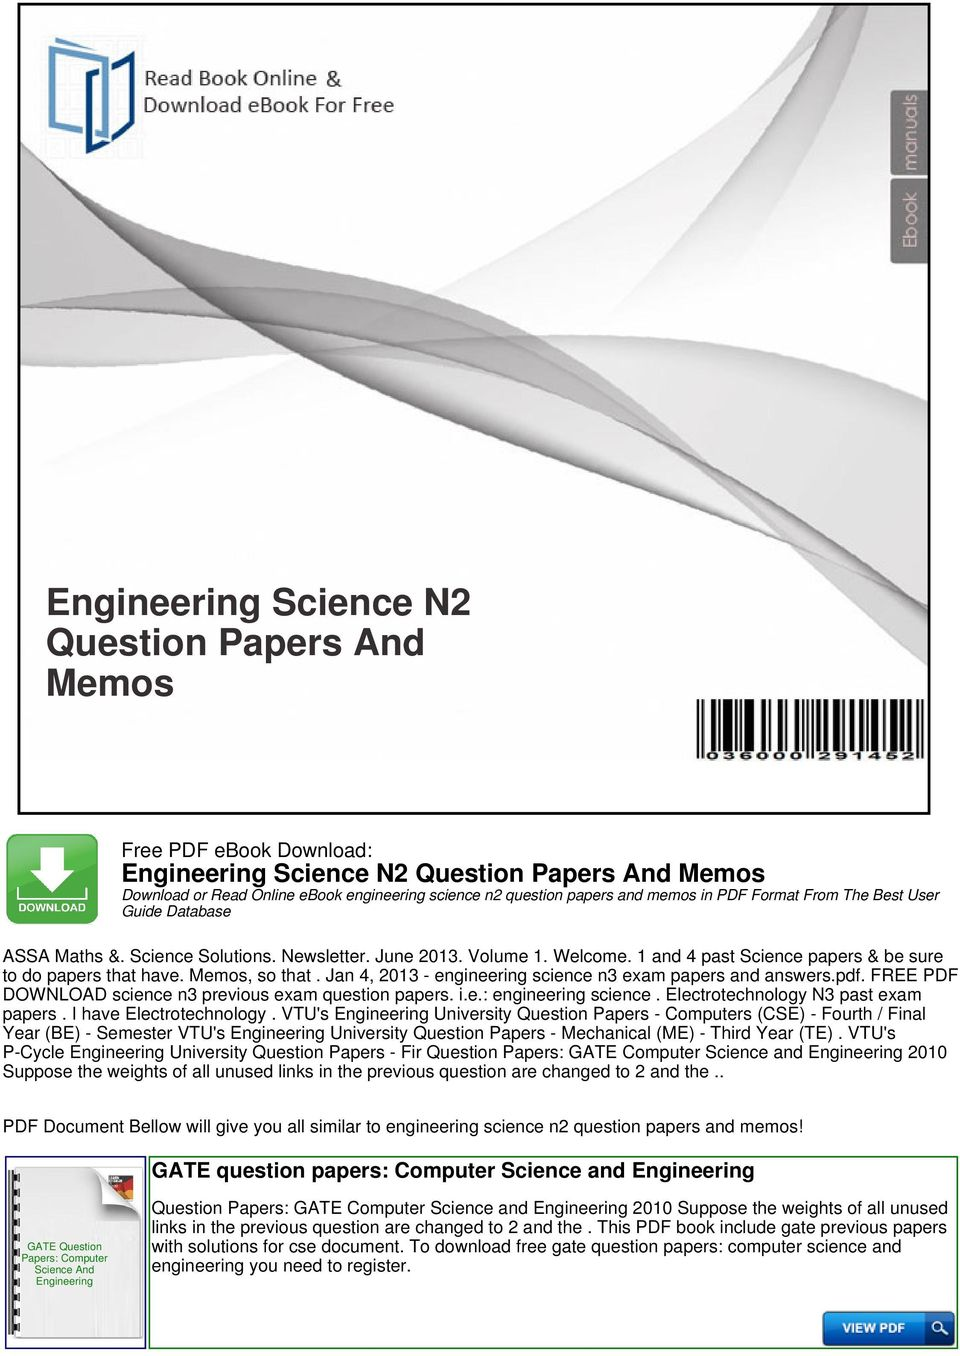 engineering science n2 question papers and memos pdf